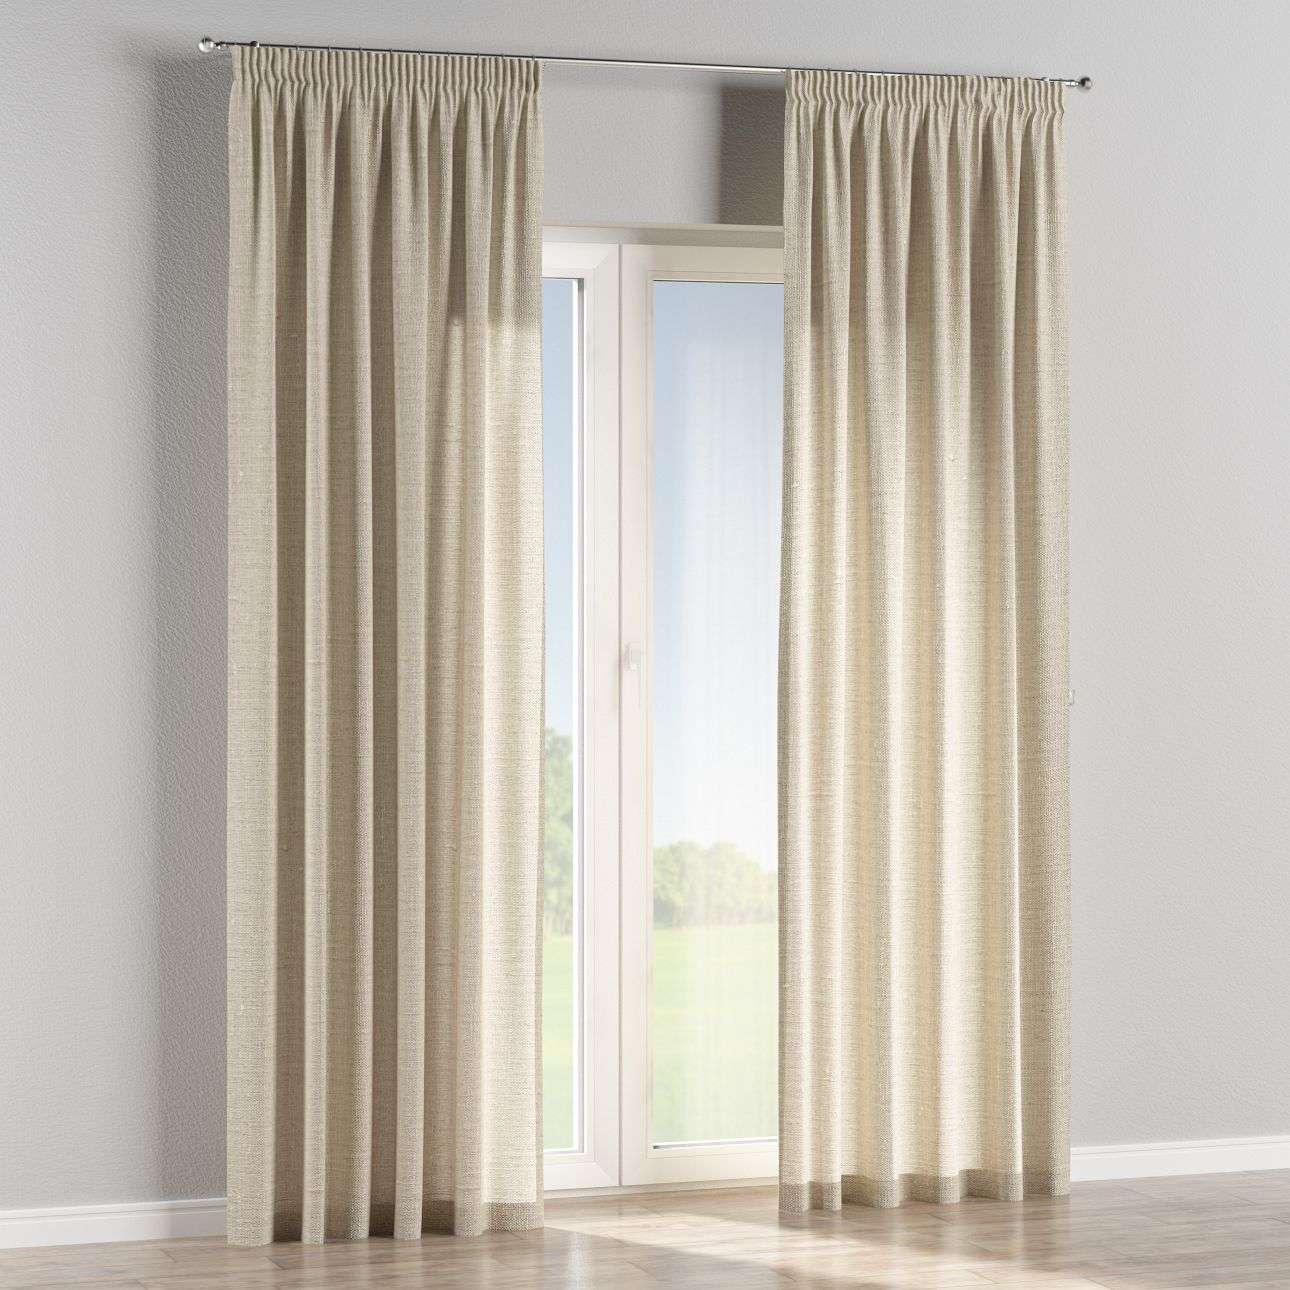 Pencil pleat curtains 130 × 260 cm (51 × 102 inch) in collection Linen, fabric: 392-05